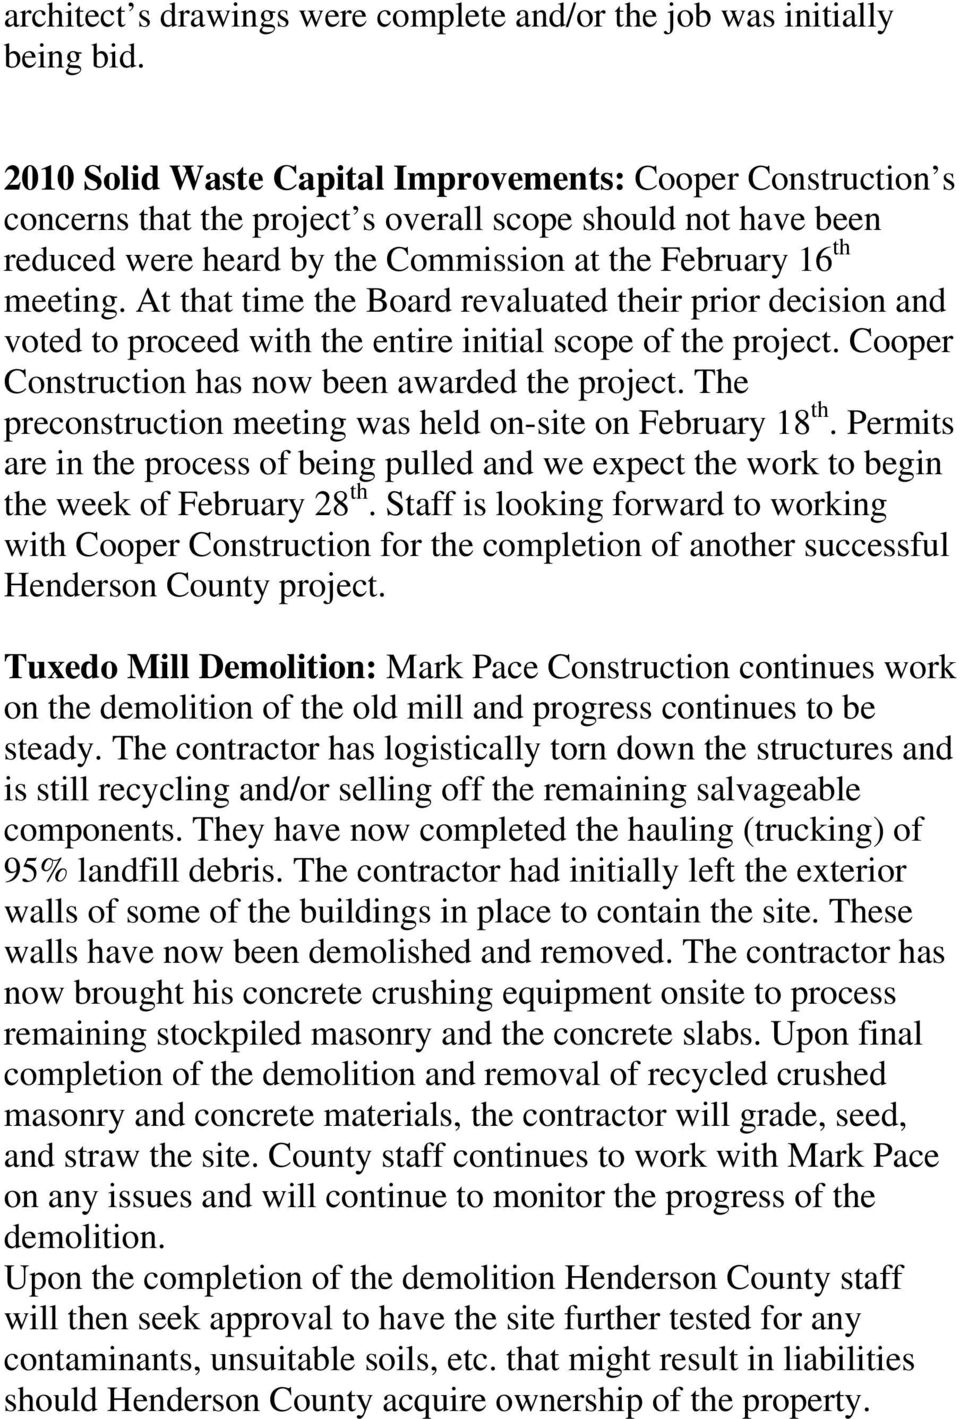 At that time the Board revaluated their prior decision and voted to proceed with the entire initial scope of the project. Cooper Construction has now been awarded the project.